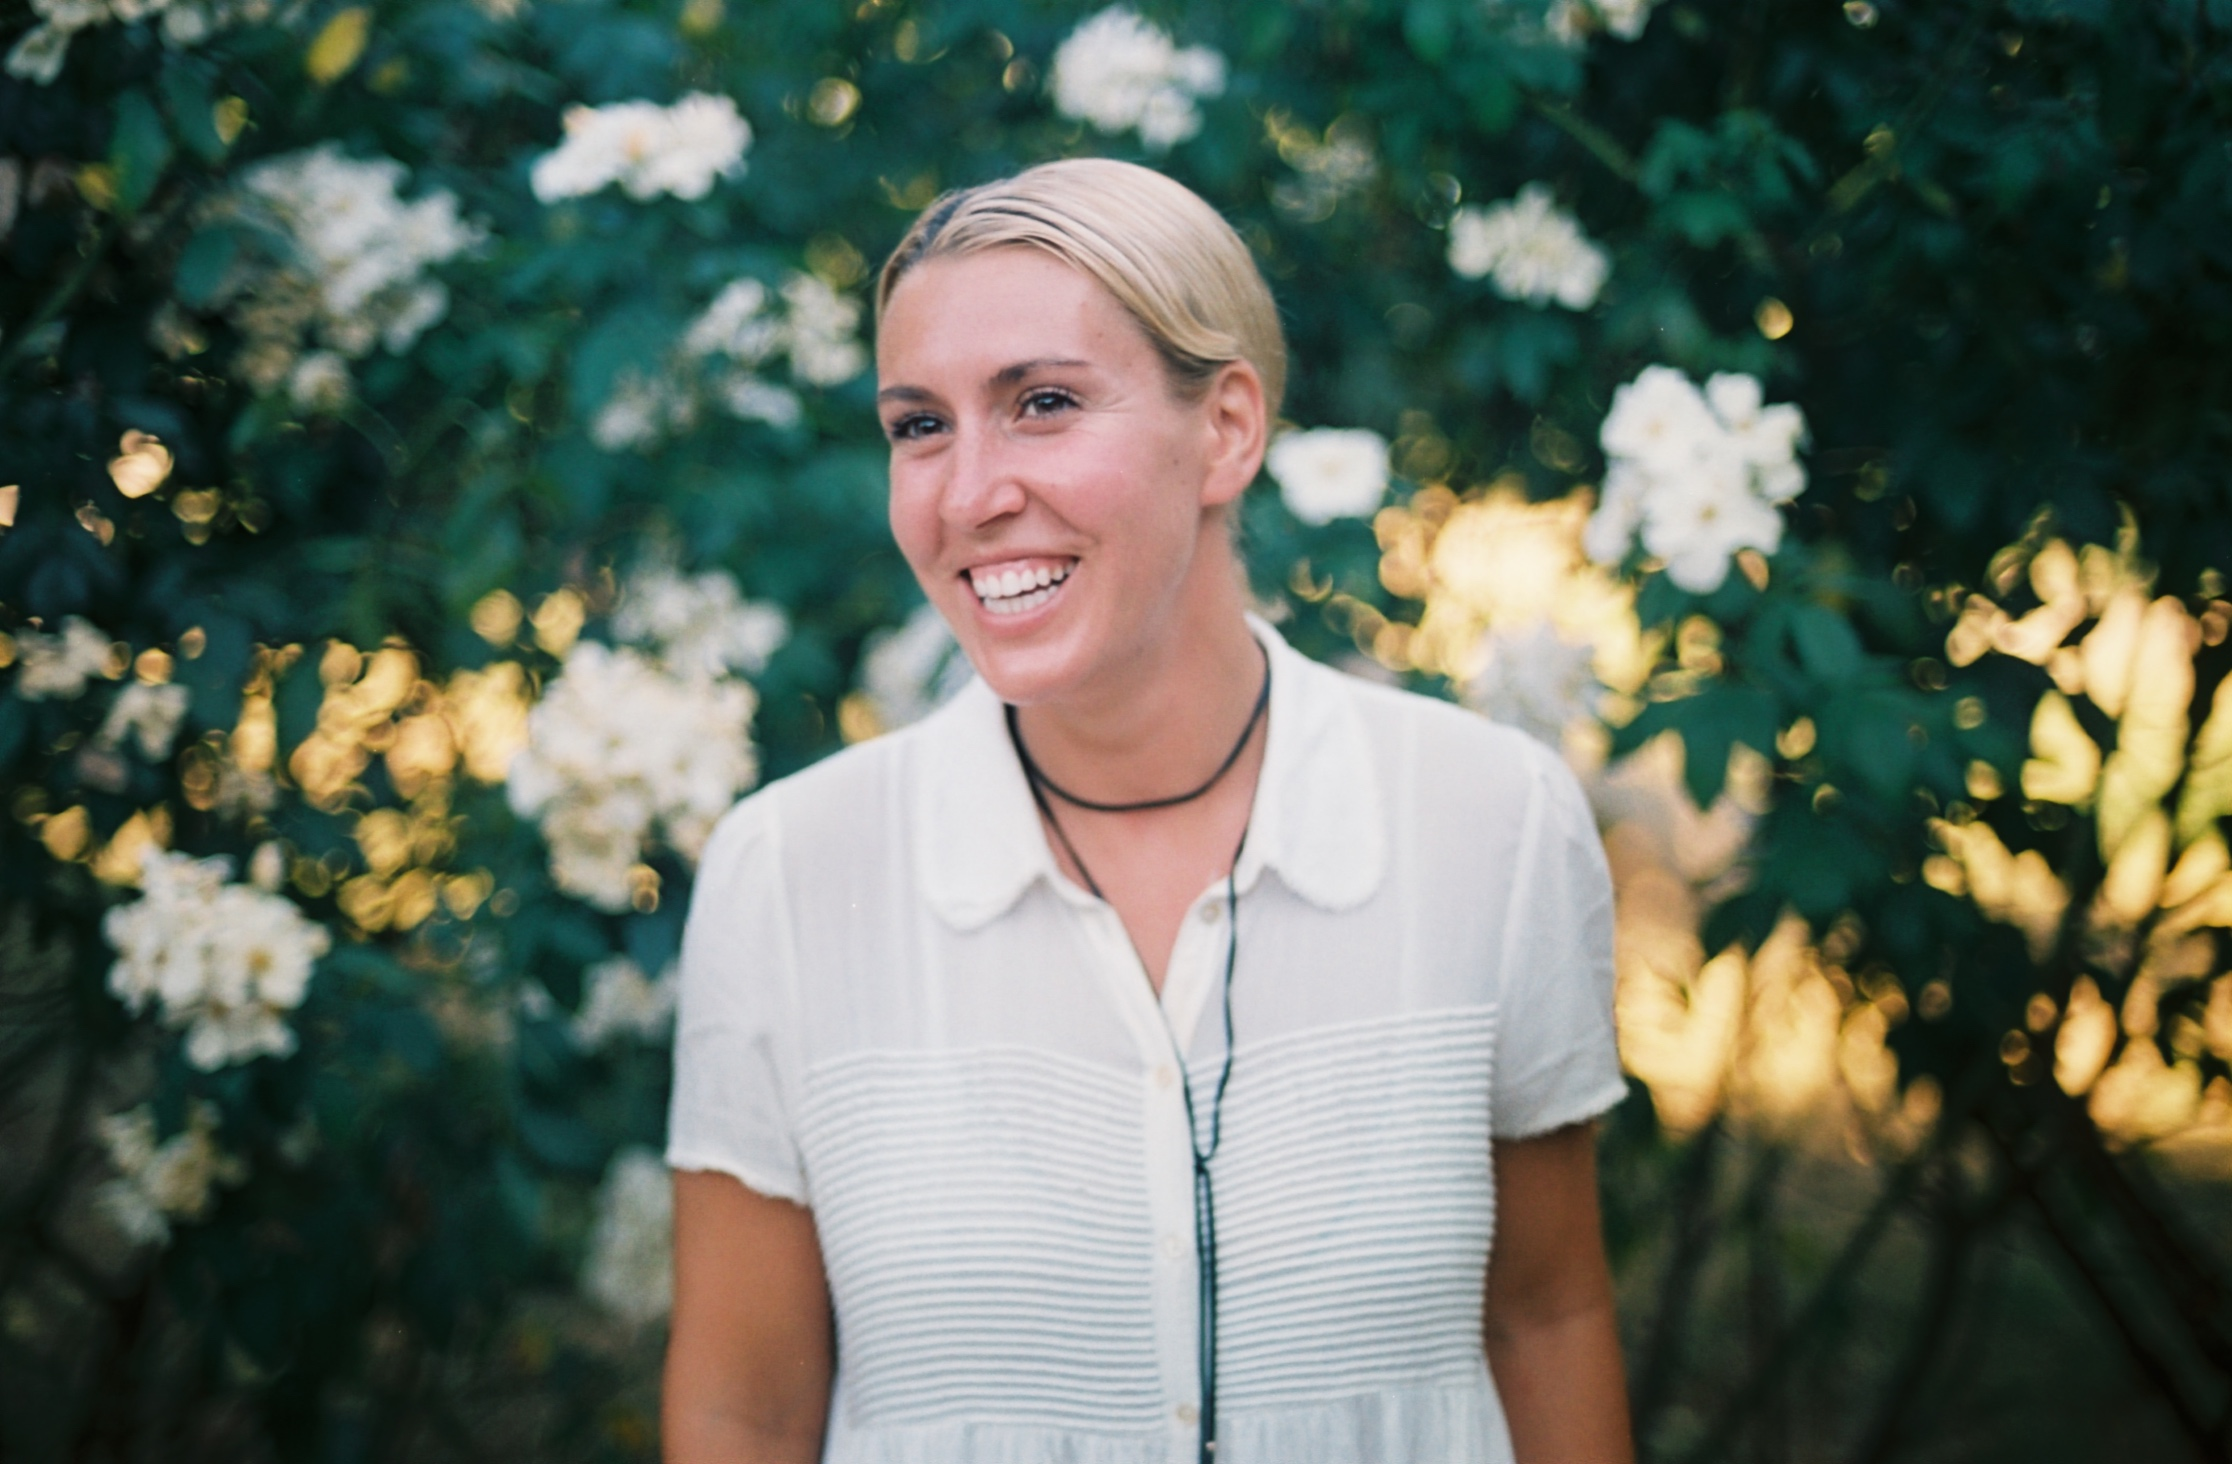 Alex is a Vancouver based entrepreneur and yoga teacher, founder of  Girlvana Yoga  and co-owner of  Distrikt Movement . She is a lady on a mission to help women come together and rise. #35mm #film